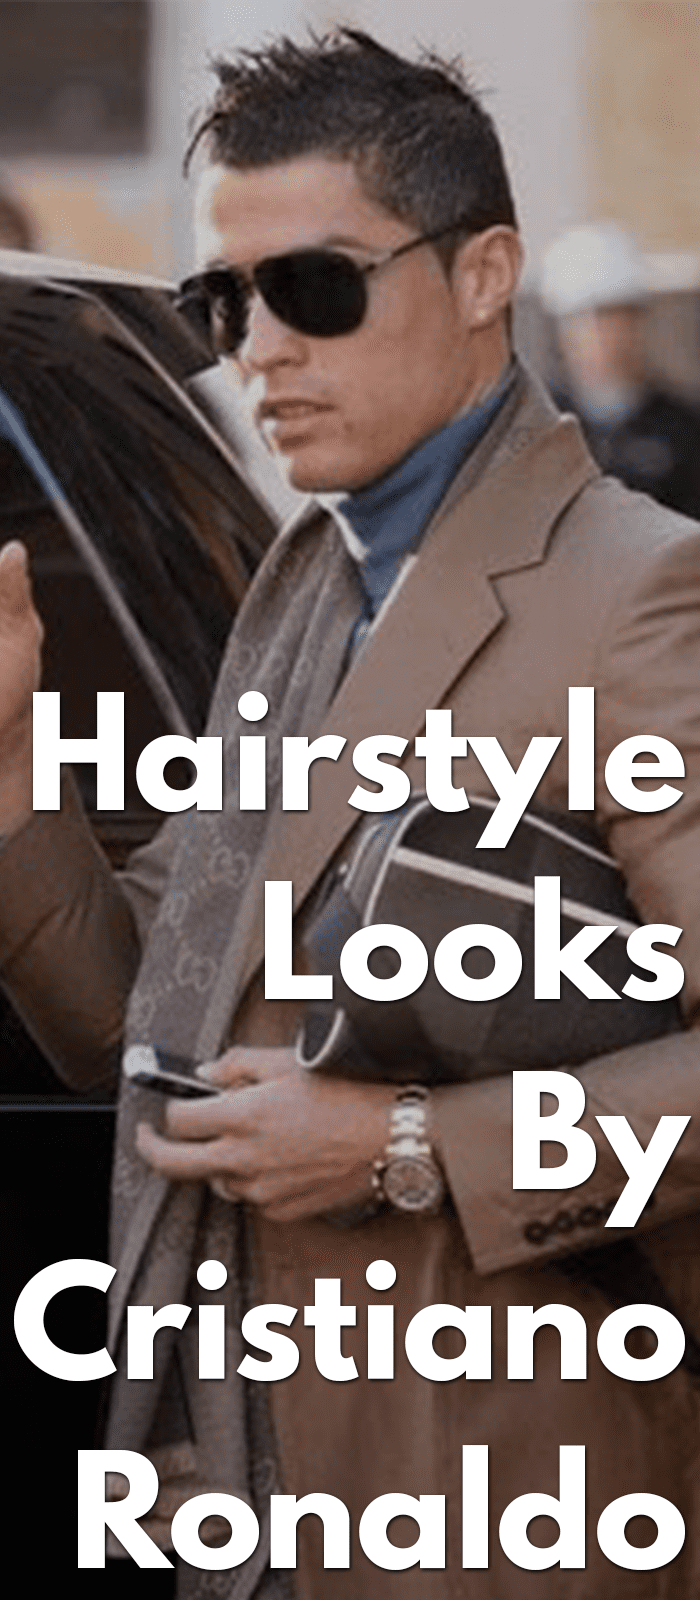 Hairstyle-Looks-By-Cristiano-Ronaldo